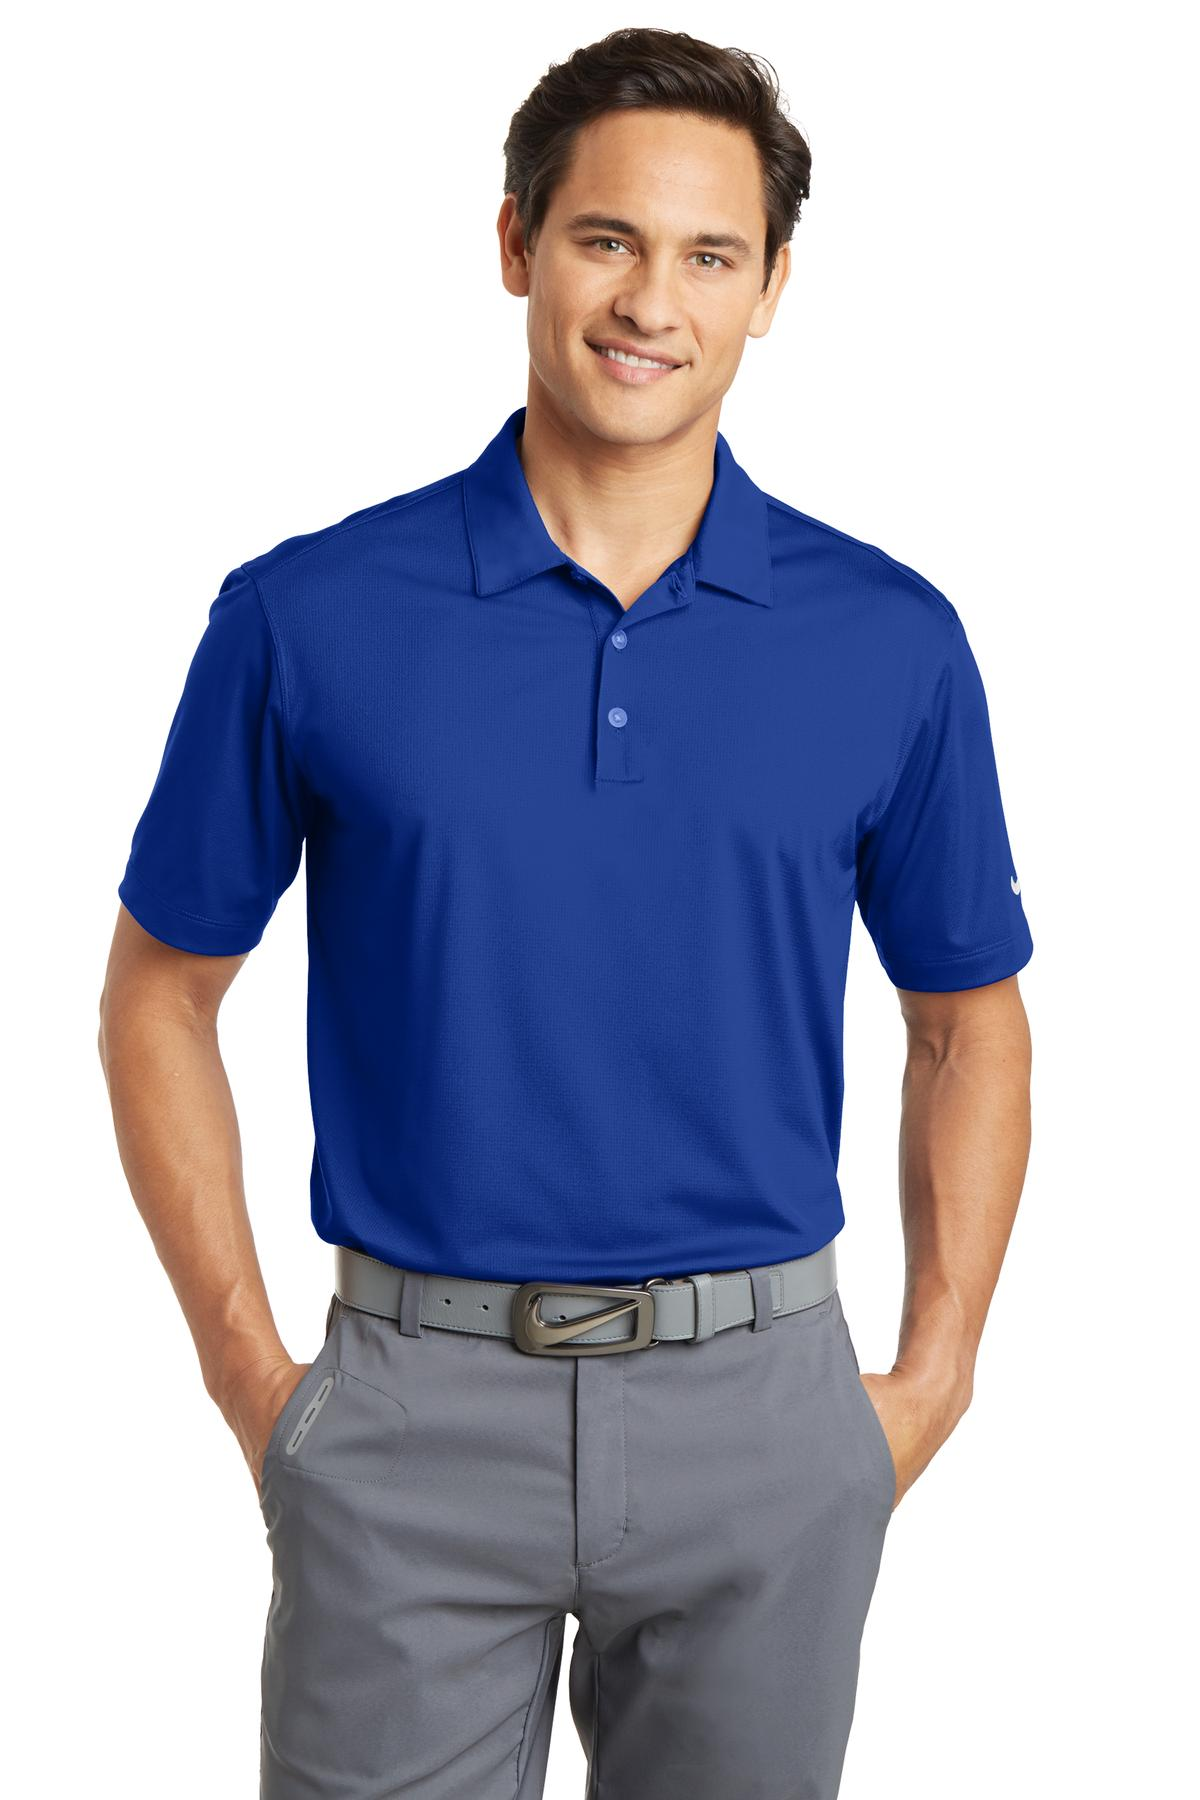 Nike Golf 637167 - Dri-FIT Vertical Mesh Polo